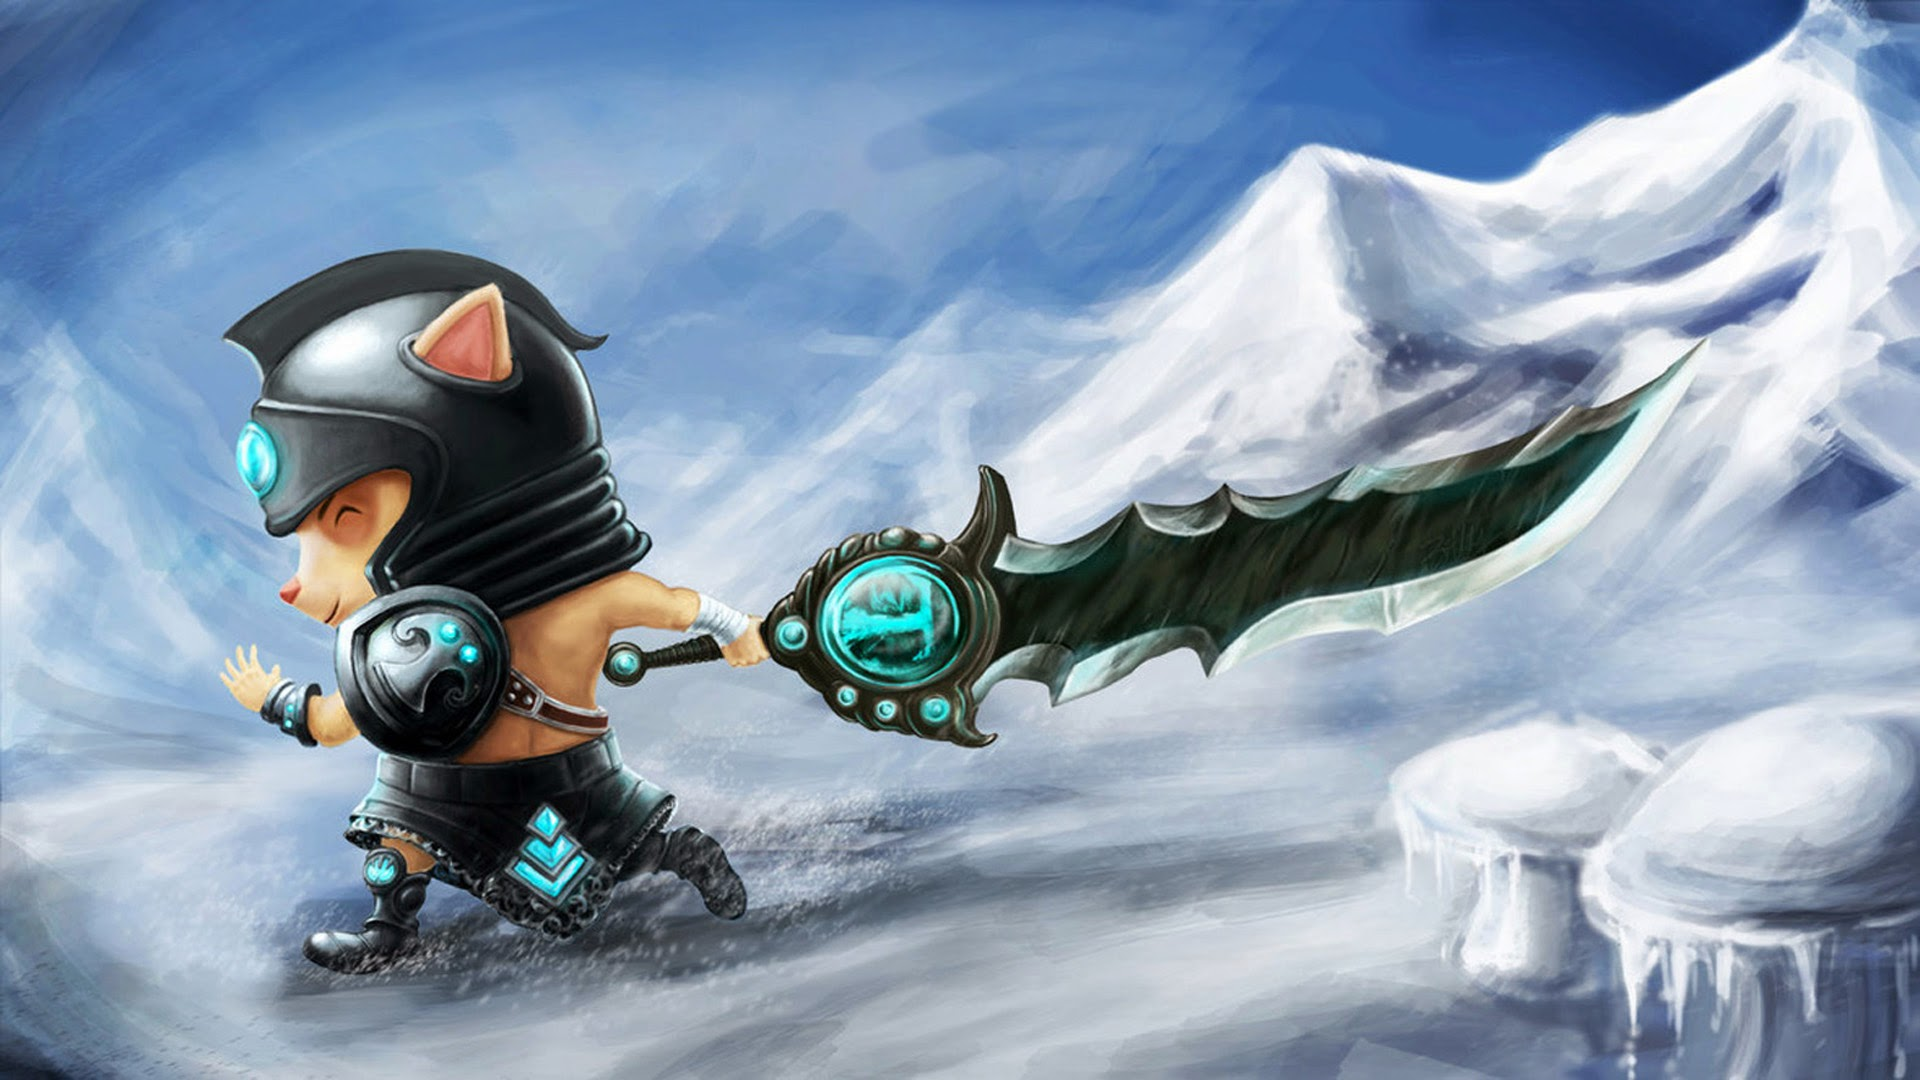 Teemo Tryndamere League of Legends h7 Wallpaper HD